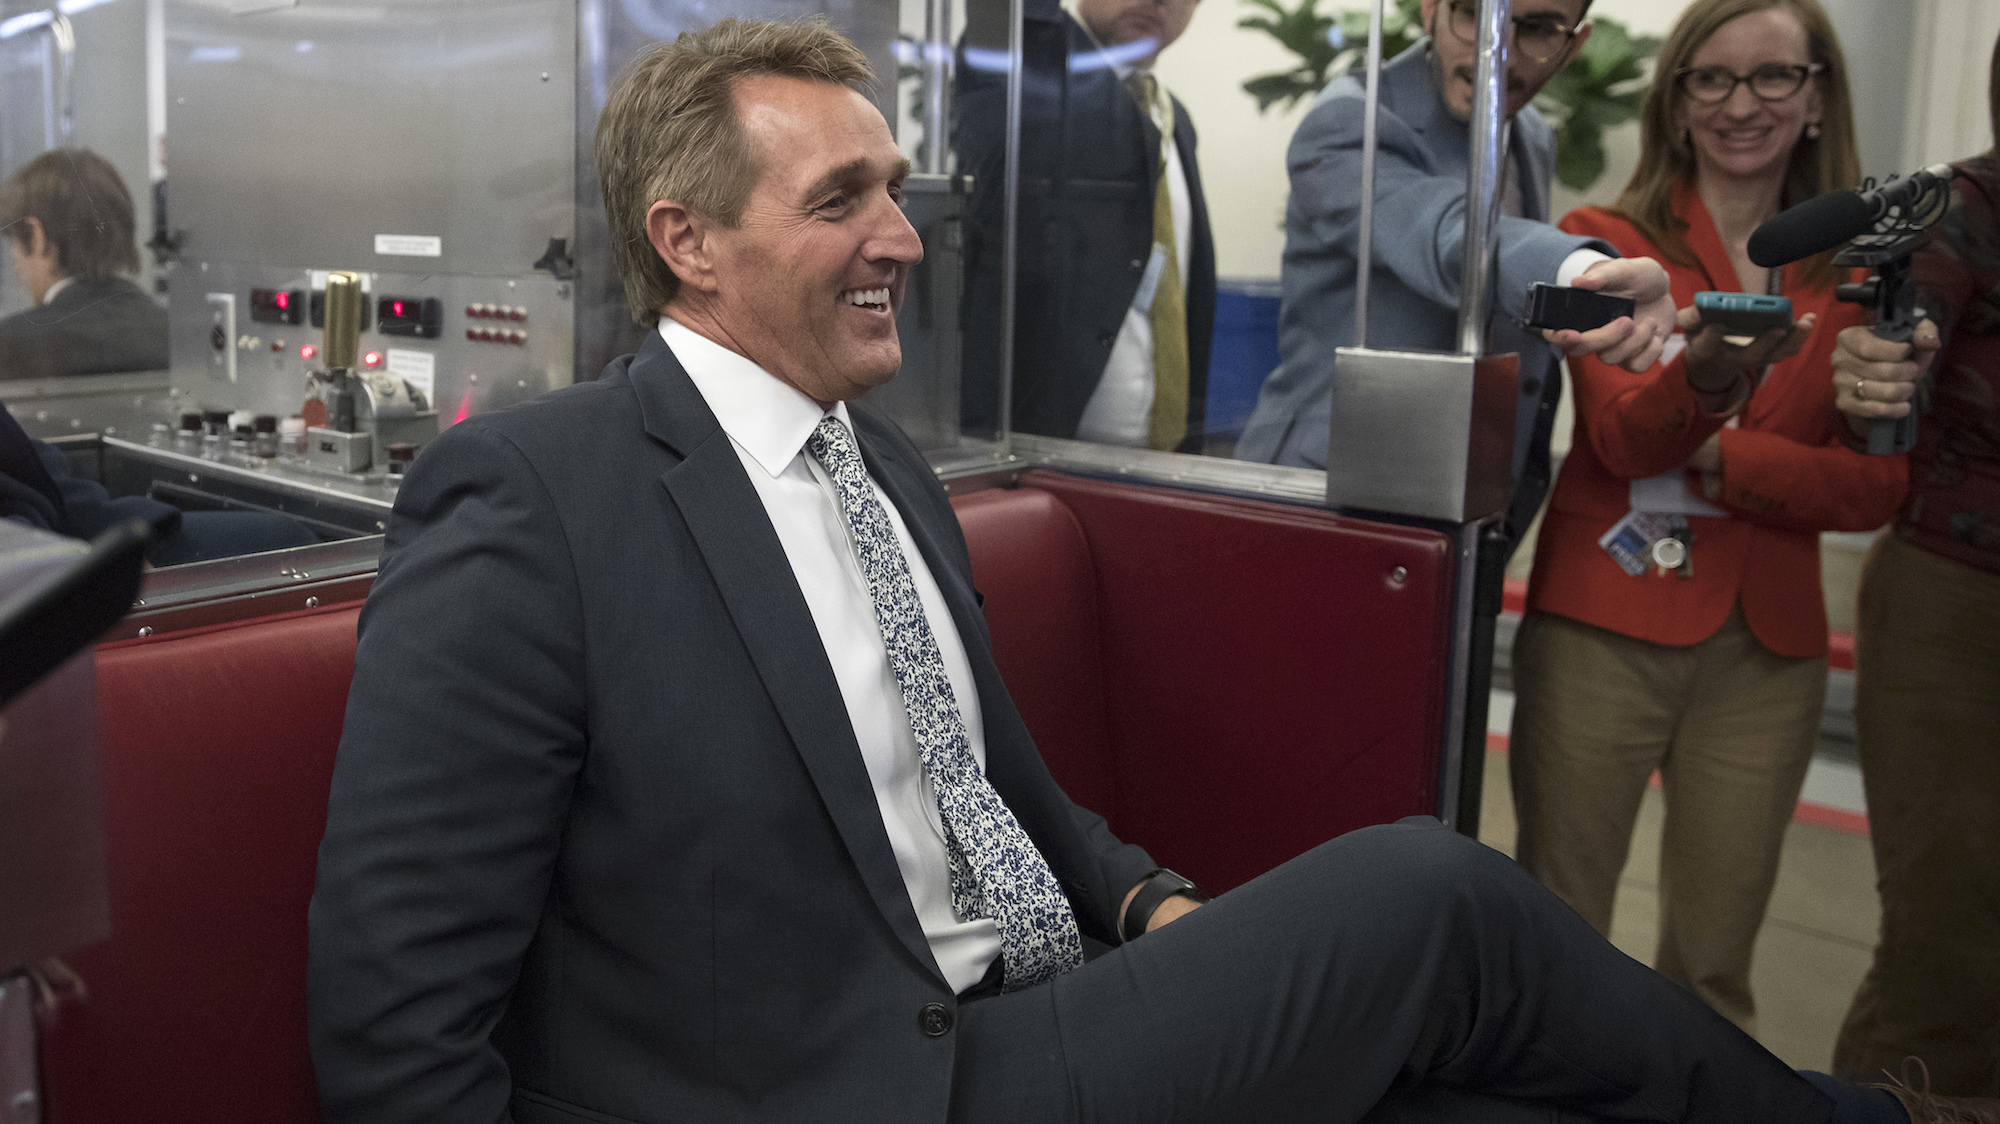 Sen. Jeff Flake boards the subway at the Capitol